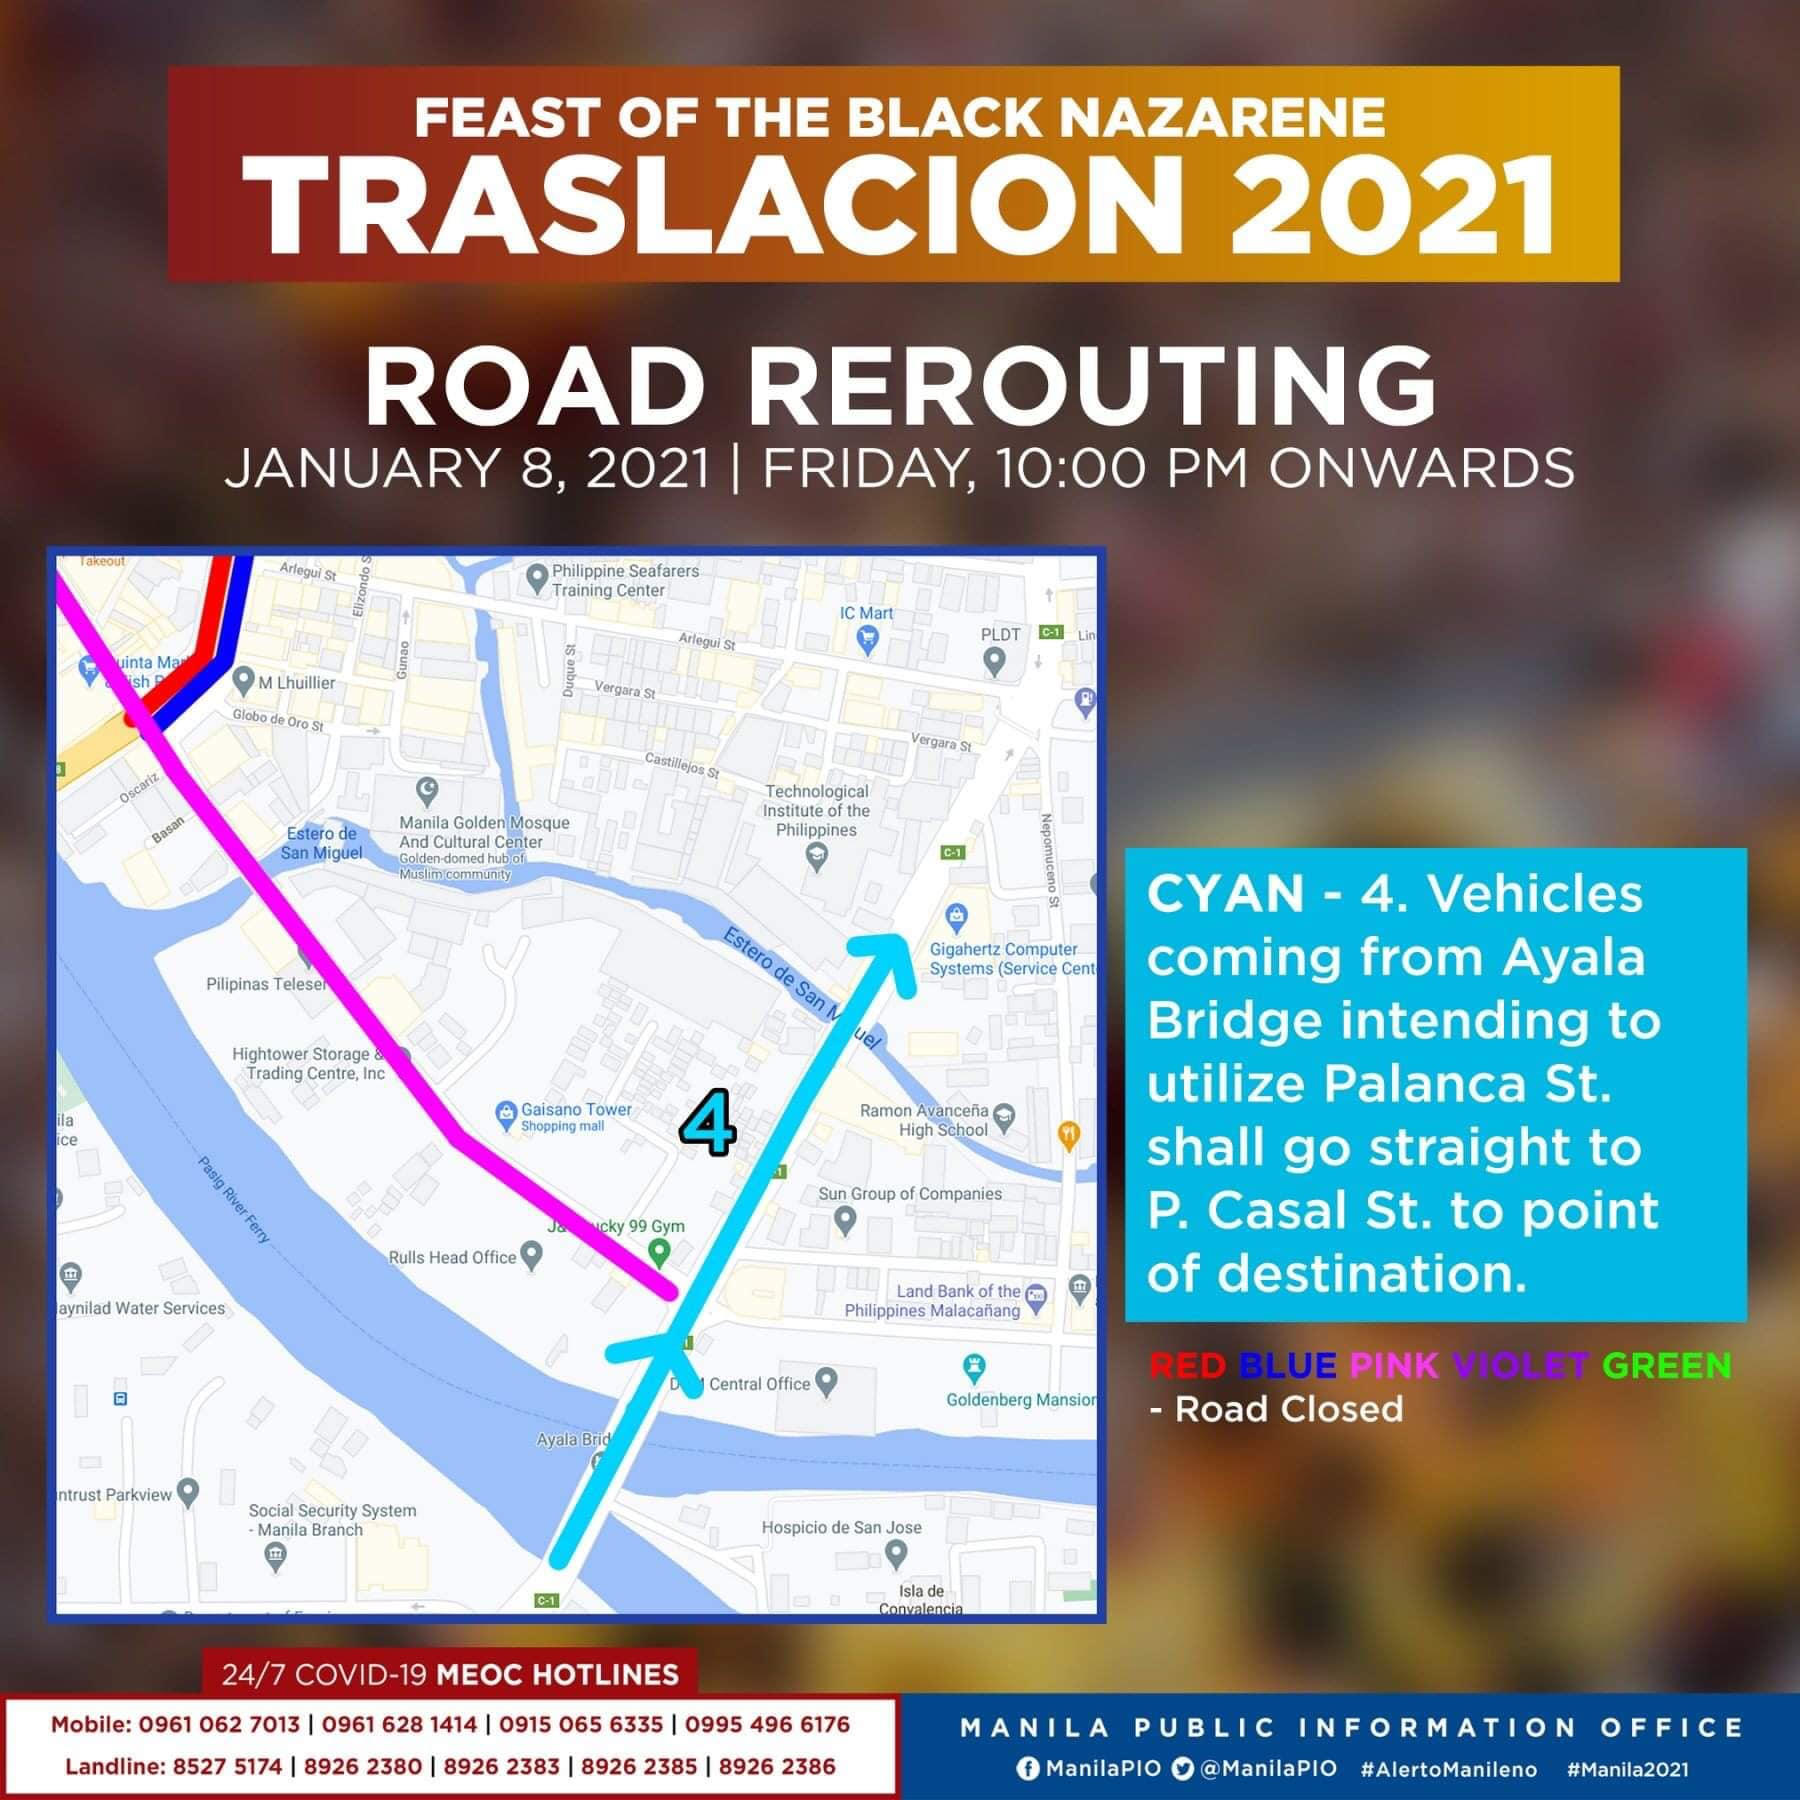 Traslacion Road rerouting on January 8, 2021 (10 pm onwards) - P. Casal St